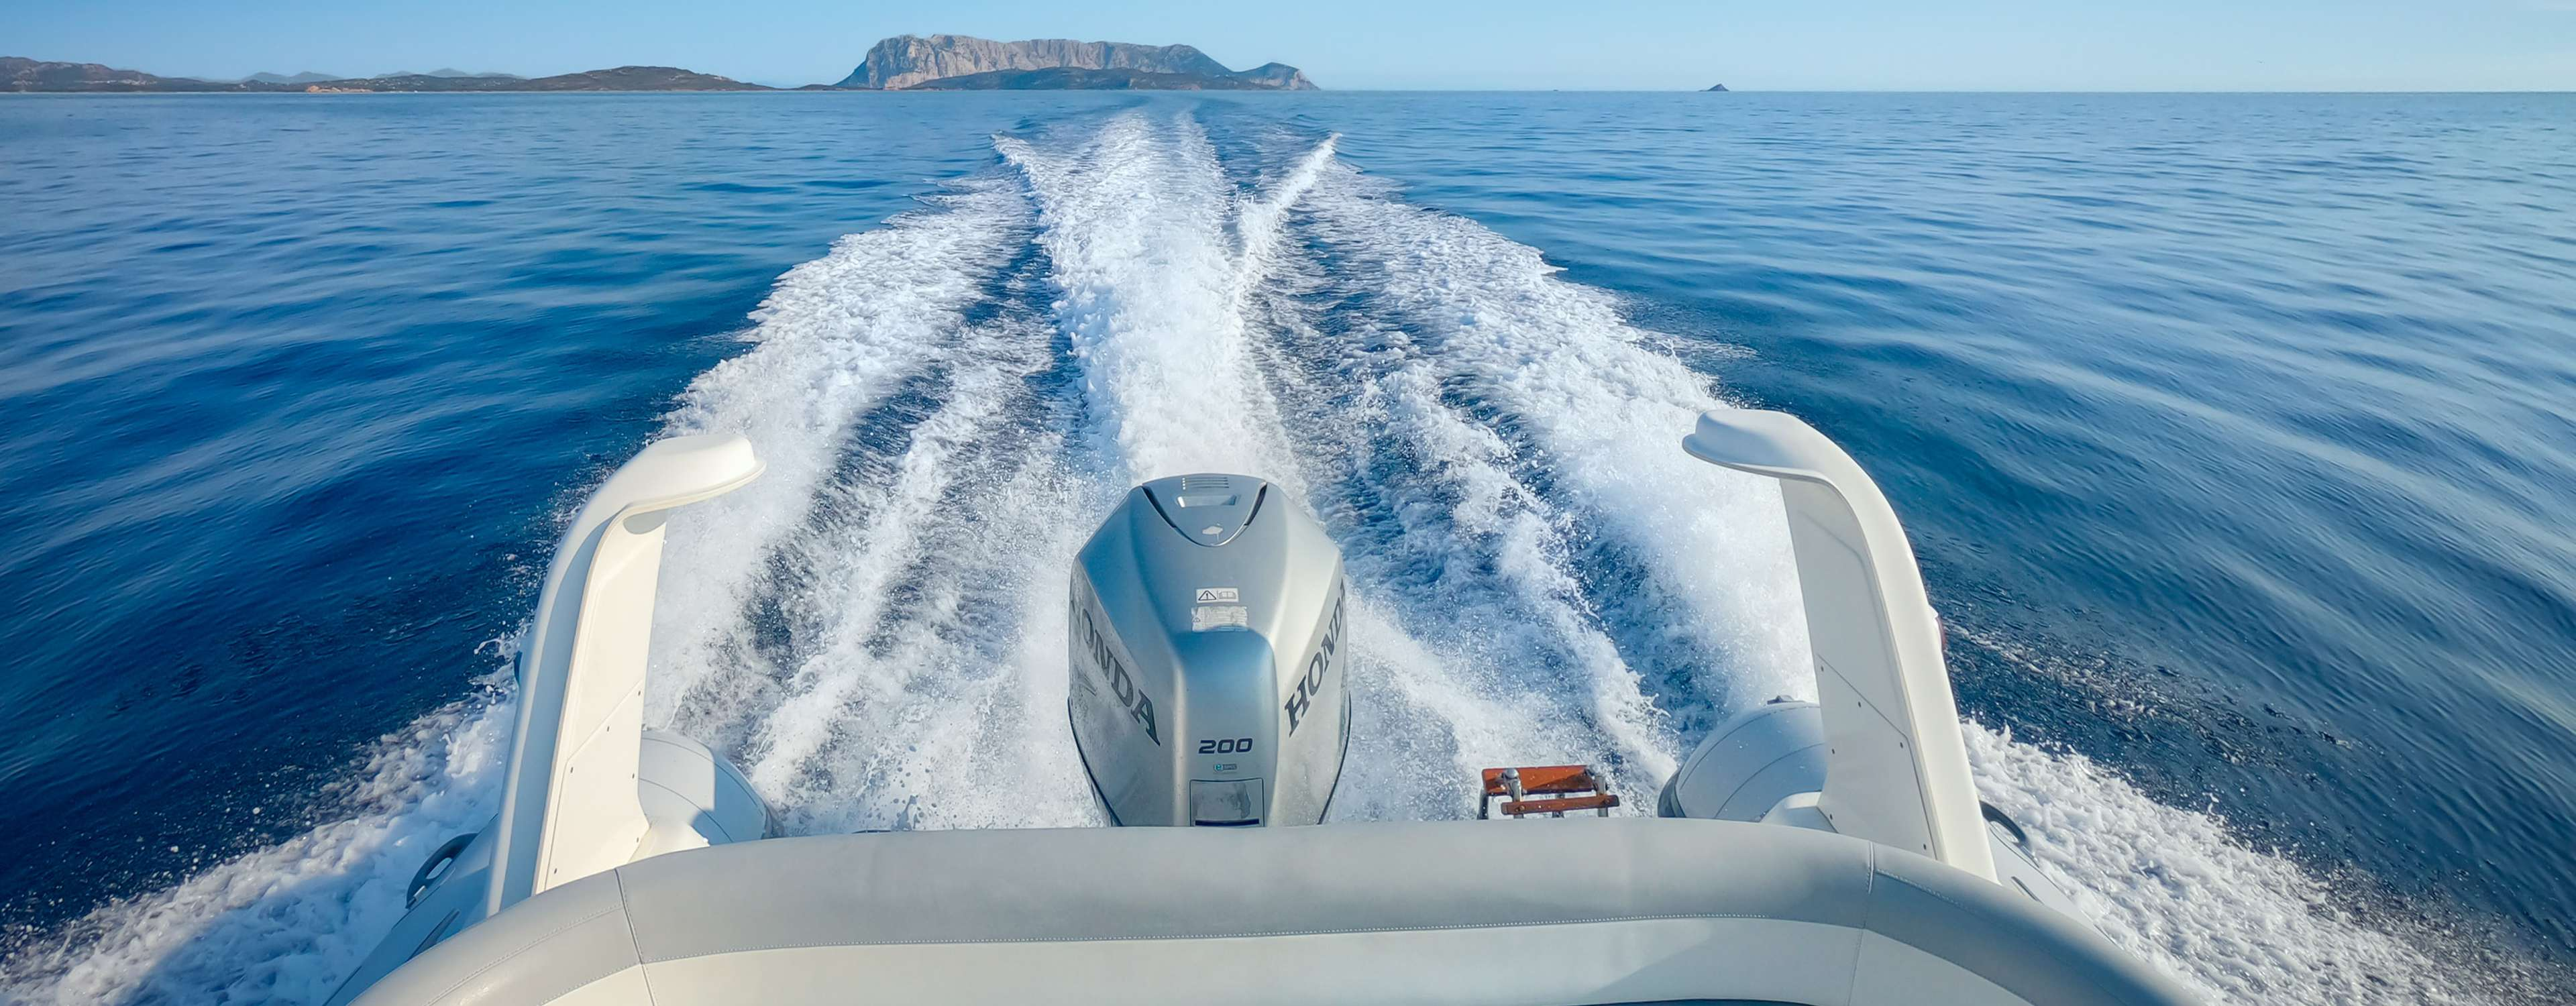 Townsville outboard motor repairs for Small boat motor repair